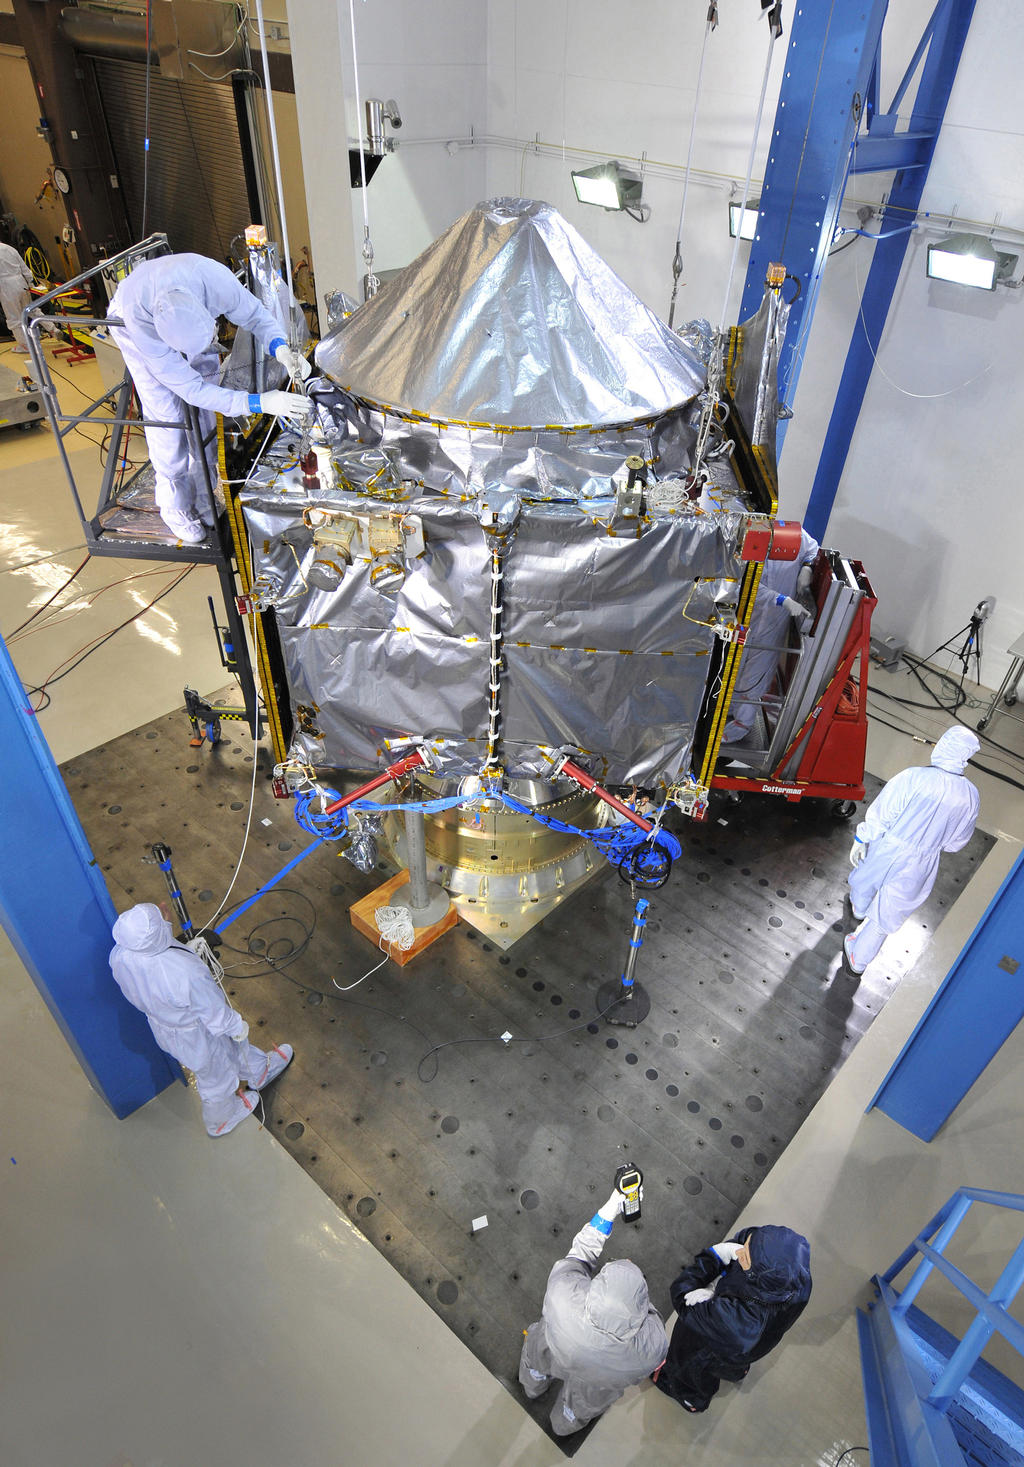 NASA's MAVEN spacecraft underwent acoustics testing on Feb. 13, 2013 at Lockheed Martin Space Systems' Reverberant Acoustic Laboratory.